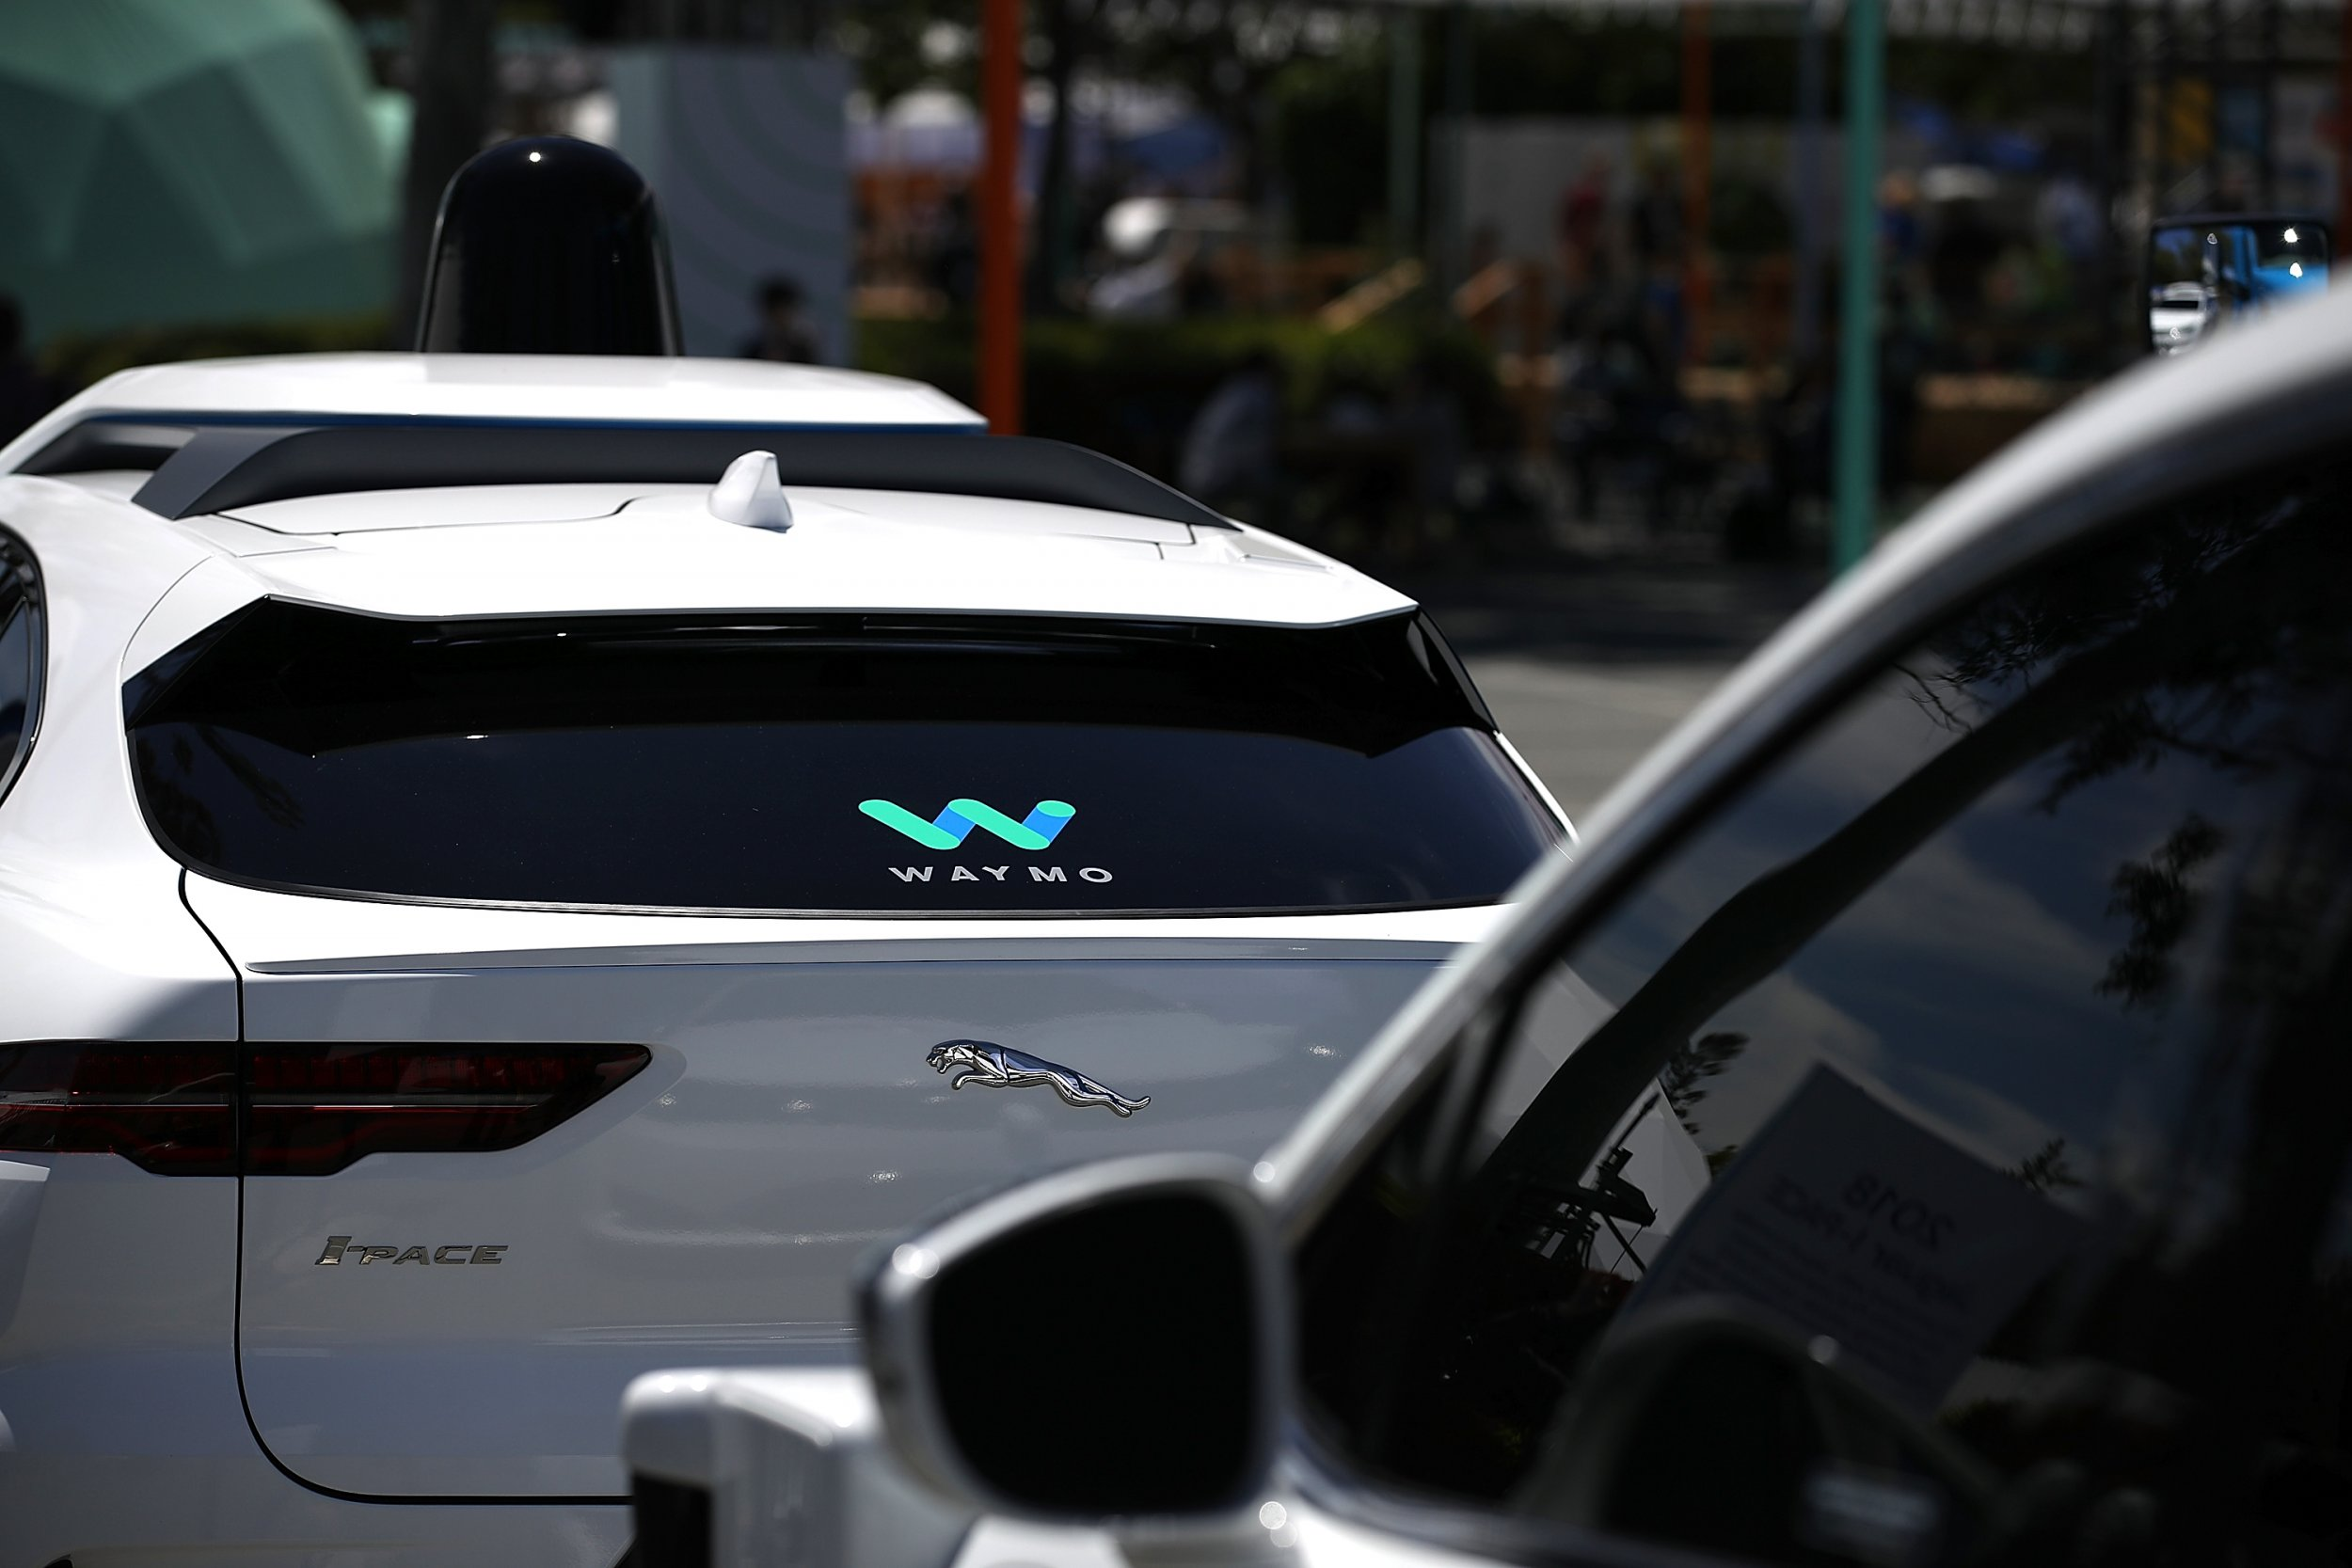 Self-driving Cars, Arizona, Chandler, Waymo, Driverless Cars, Autonomous Vehicles